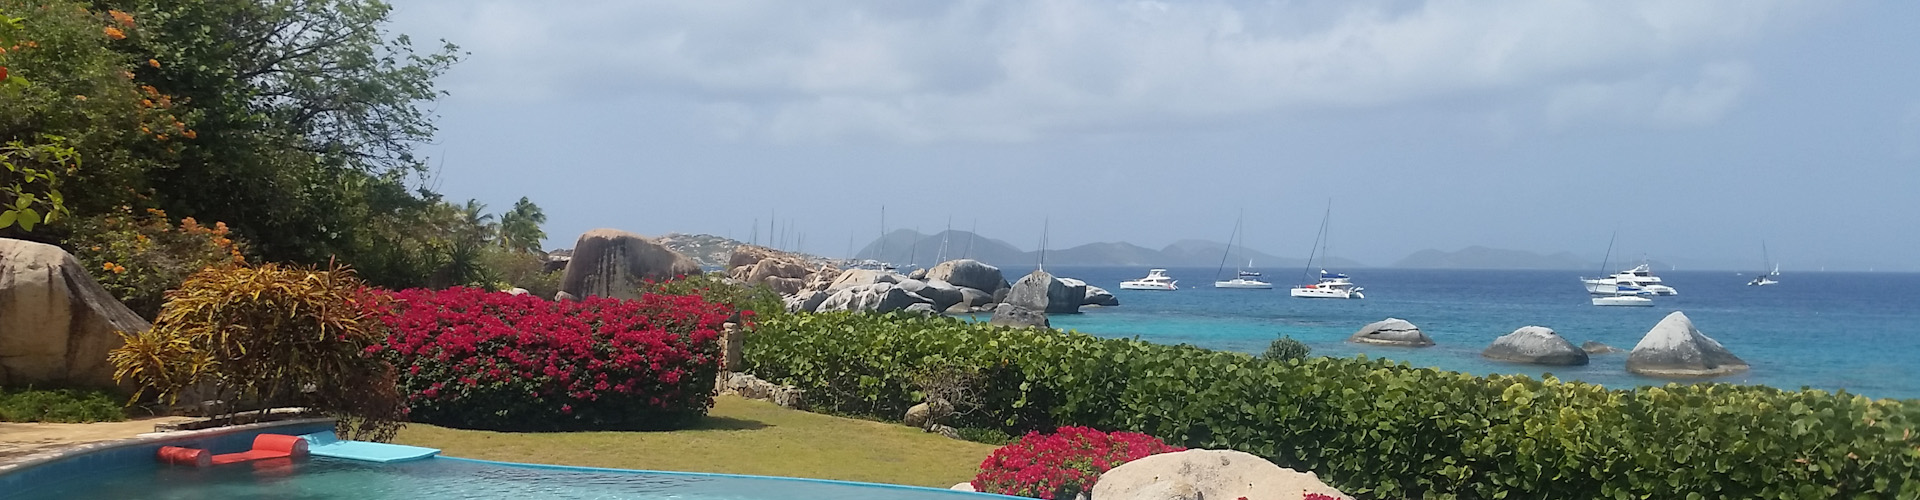 Top 5 Family Vacations in the BVI